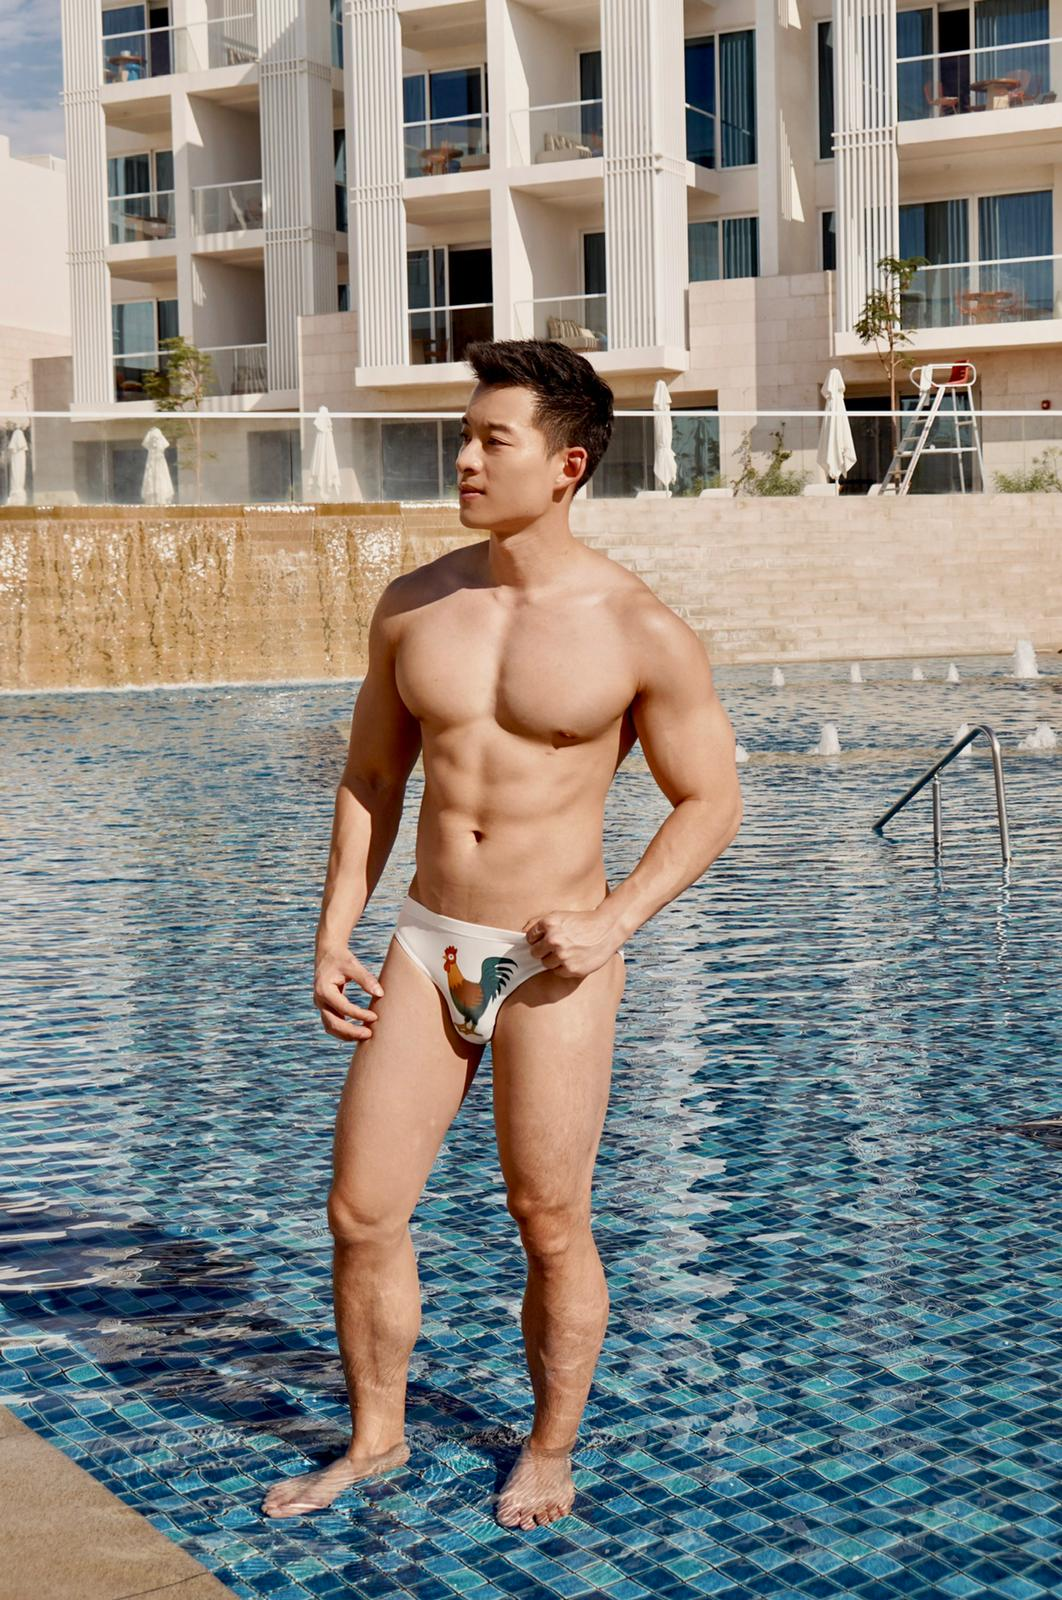 Conway Tam Sexy Asian Male Model for Gay Brand JJ Malibu